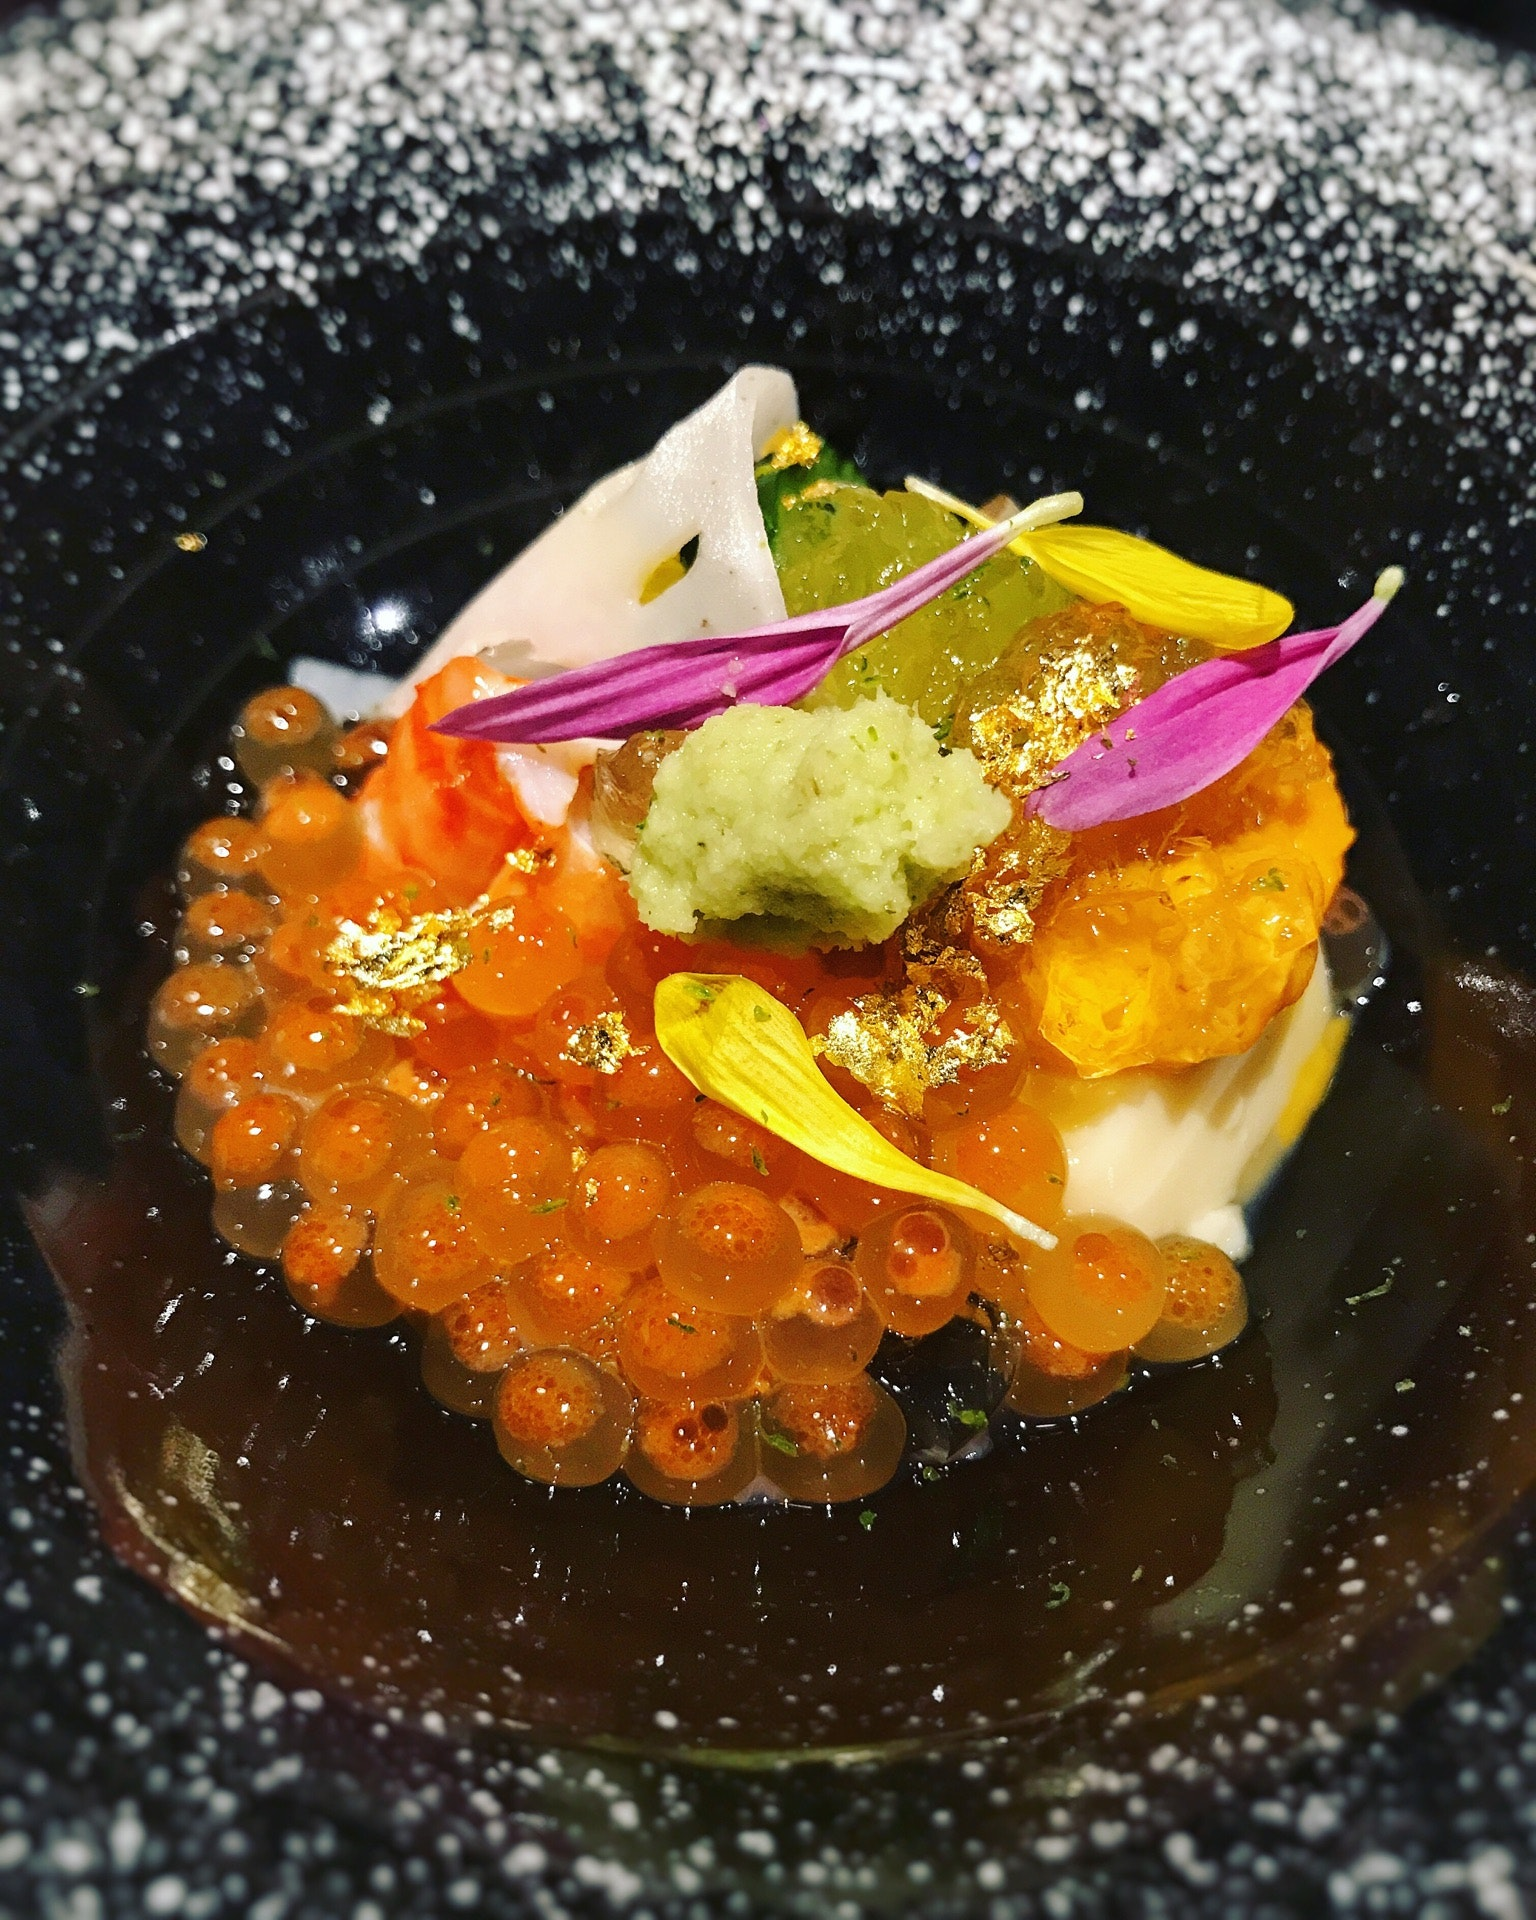 Chef's Signature (Part of the Omakase)